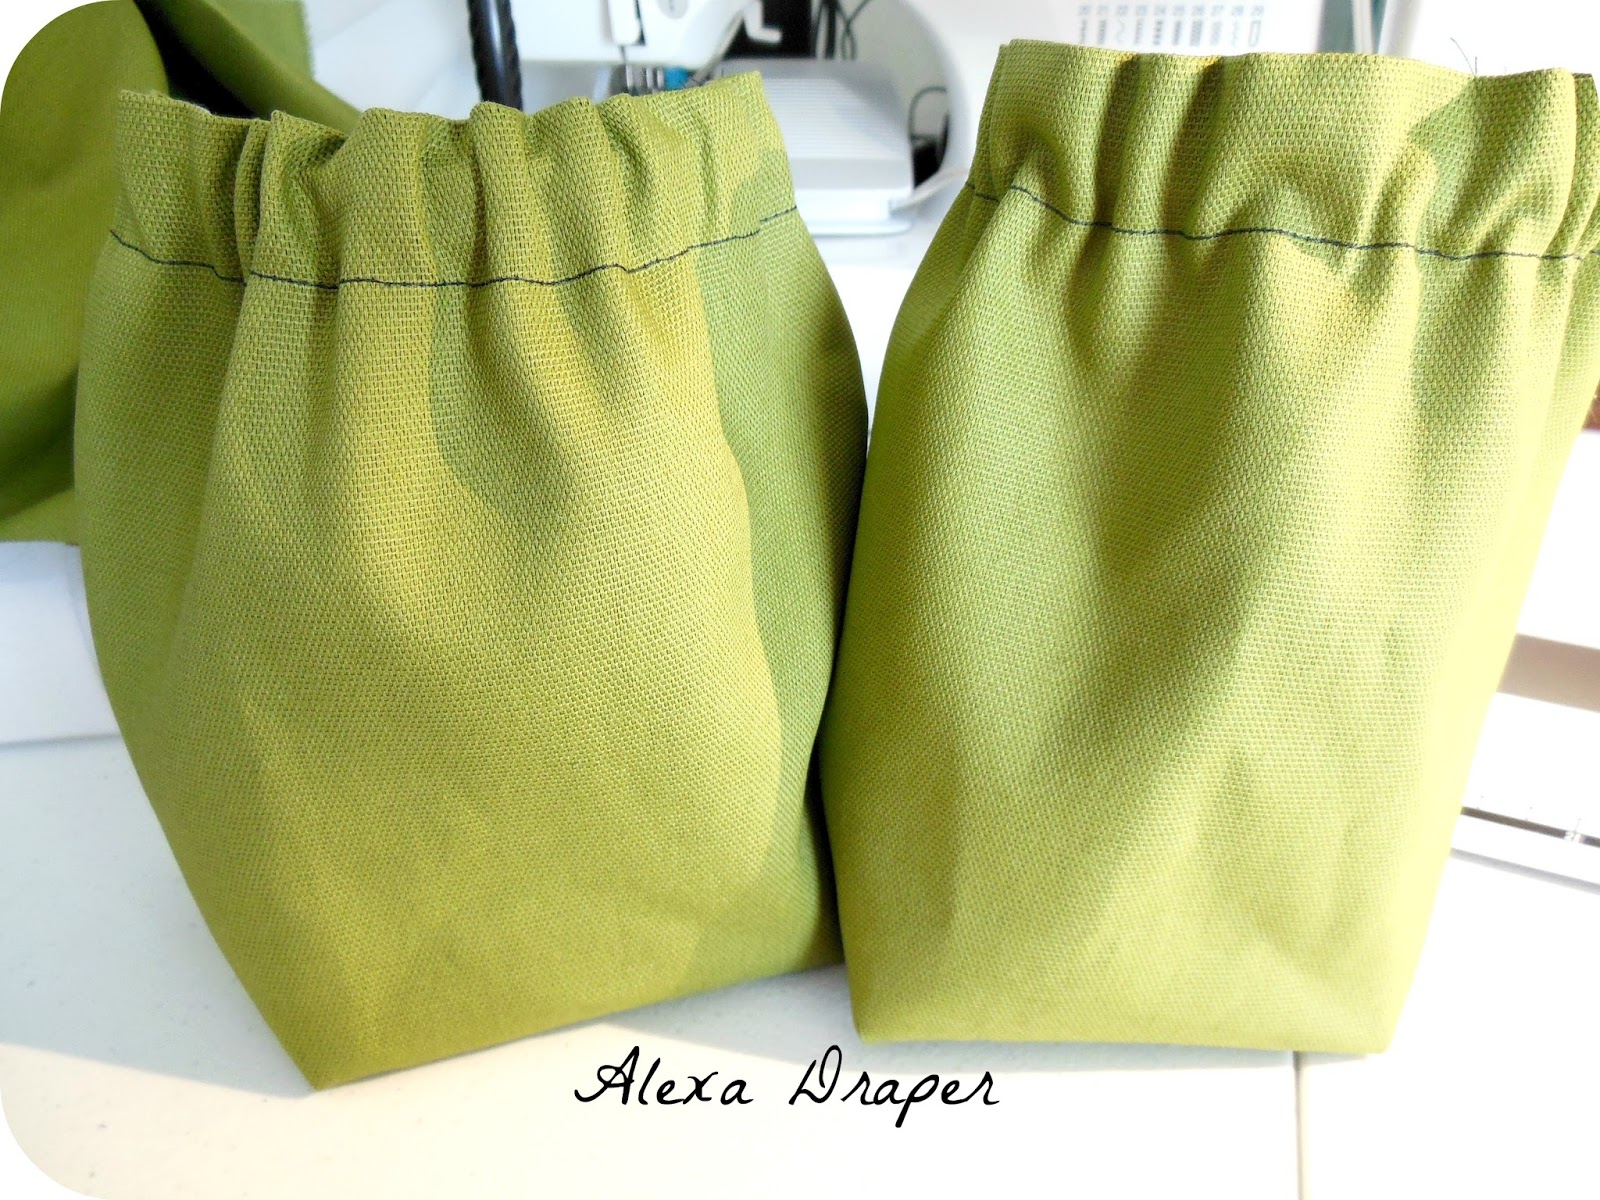 alexa draper design and build your own diaper bag part two bottle pockets. Black Bedroom Furniture Sets. Home Design Ideas